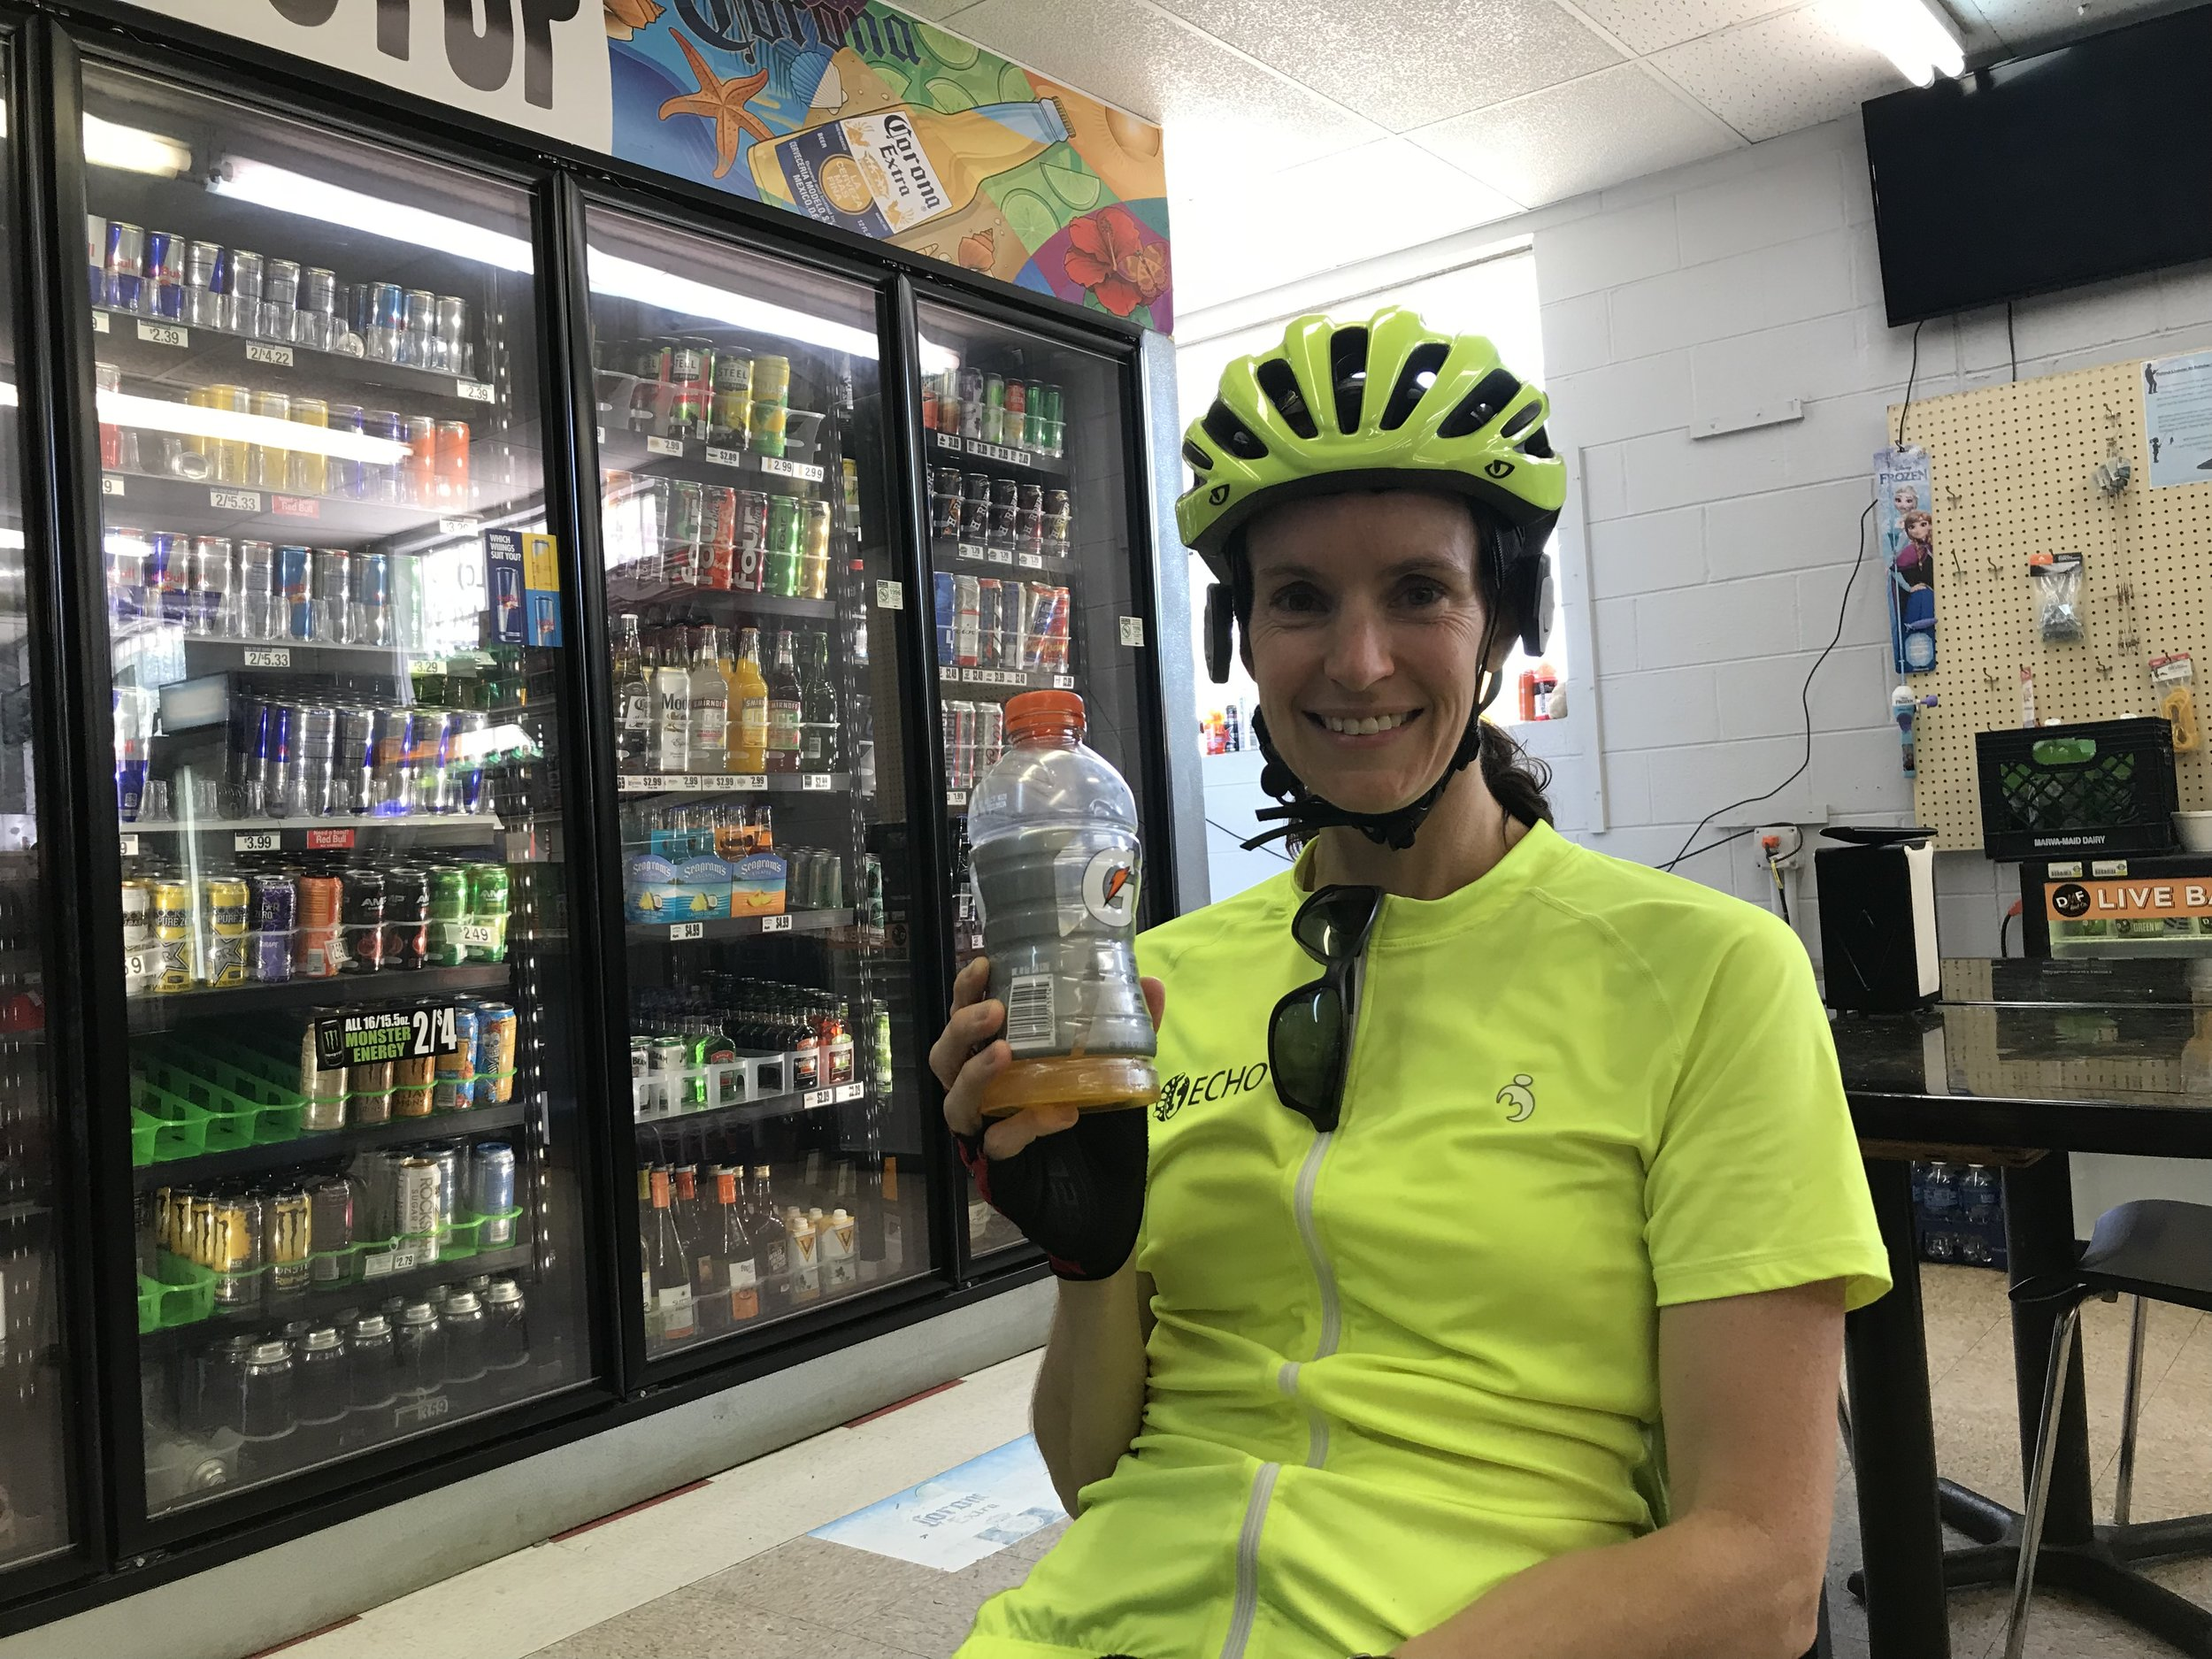 Does this look like I'm advertising for Gatorade? Well, I could certainly be their spokesperson because that beverage did everything their ads claim!